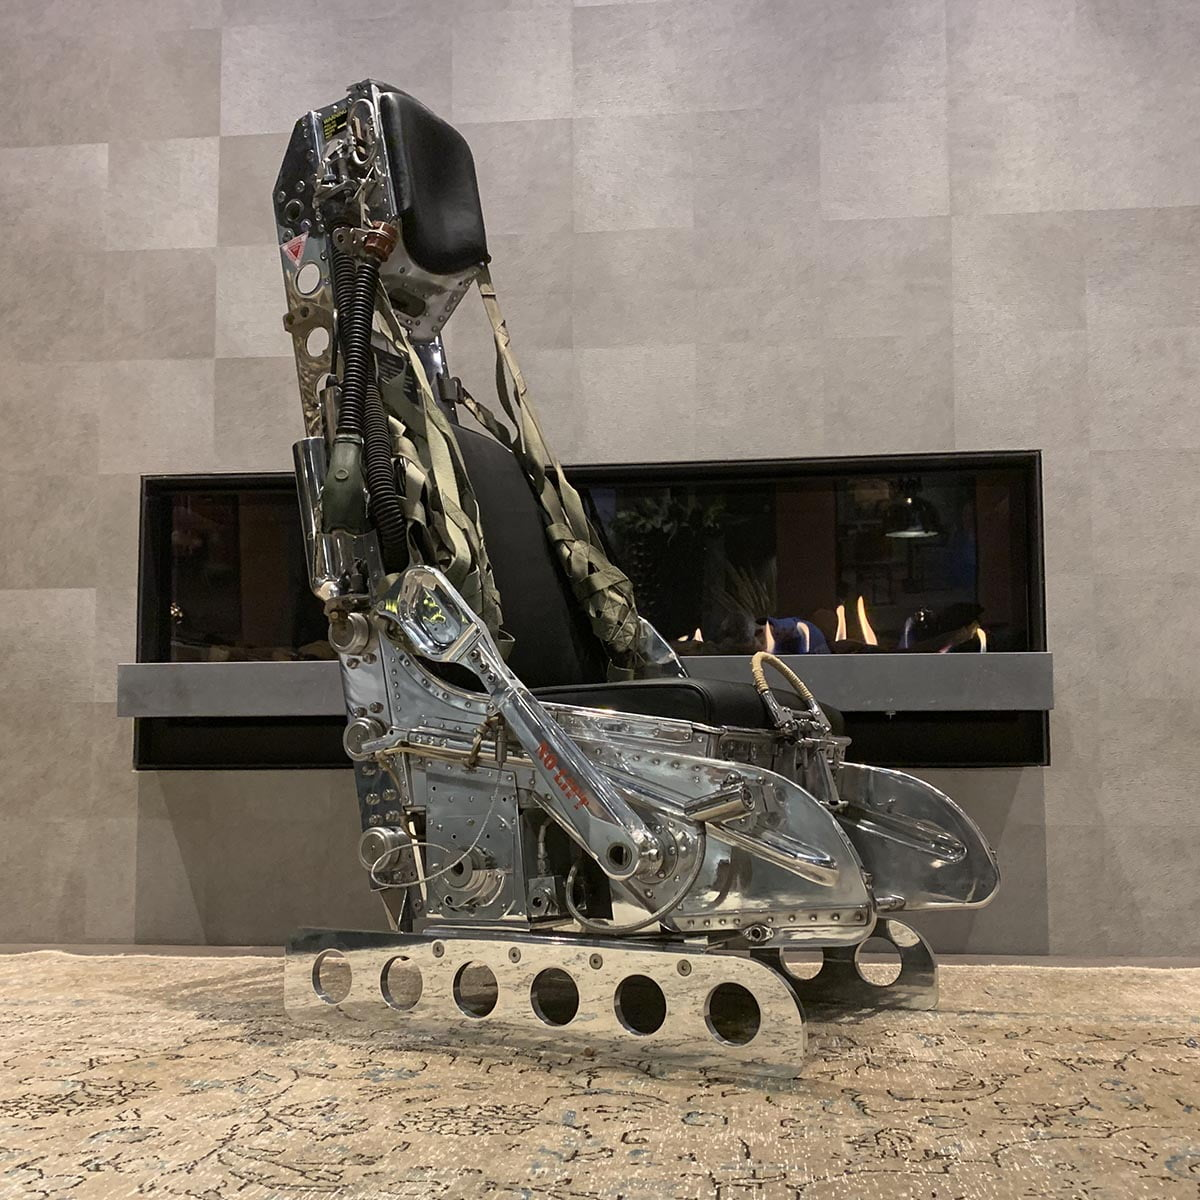 Polished Lockheed Martin ejection seat in front of fireplace.